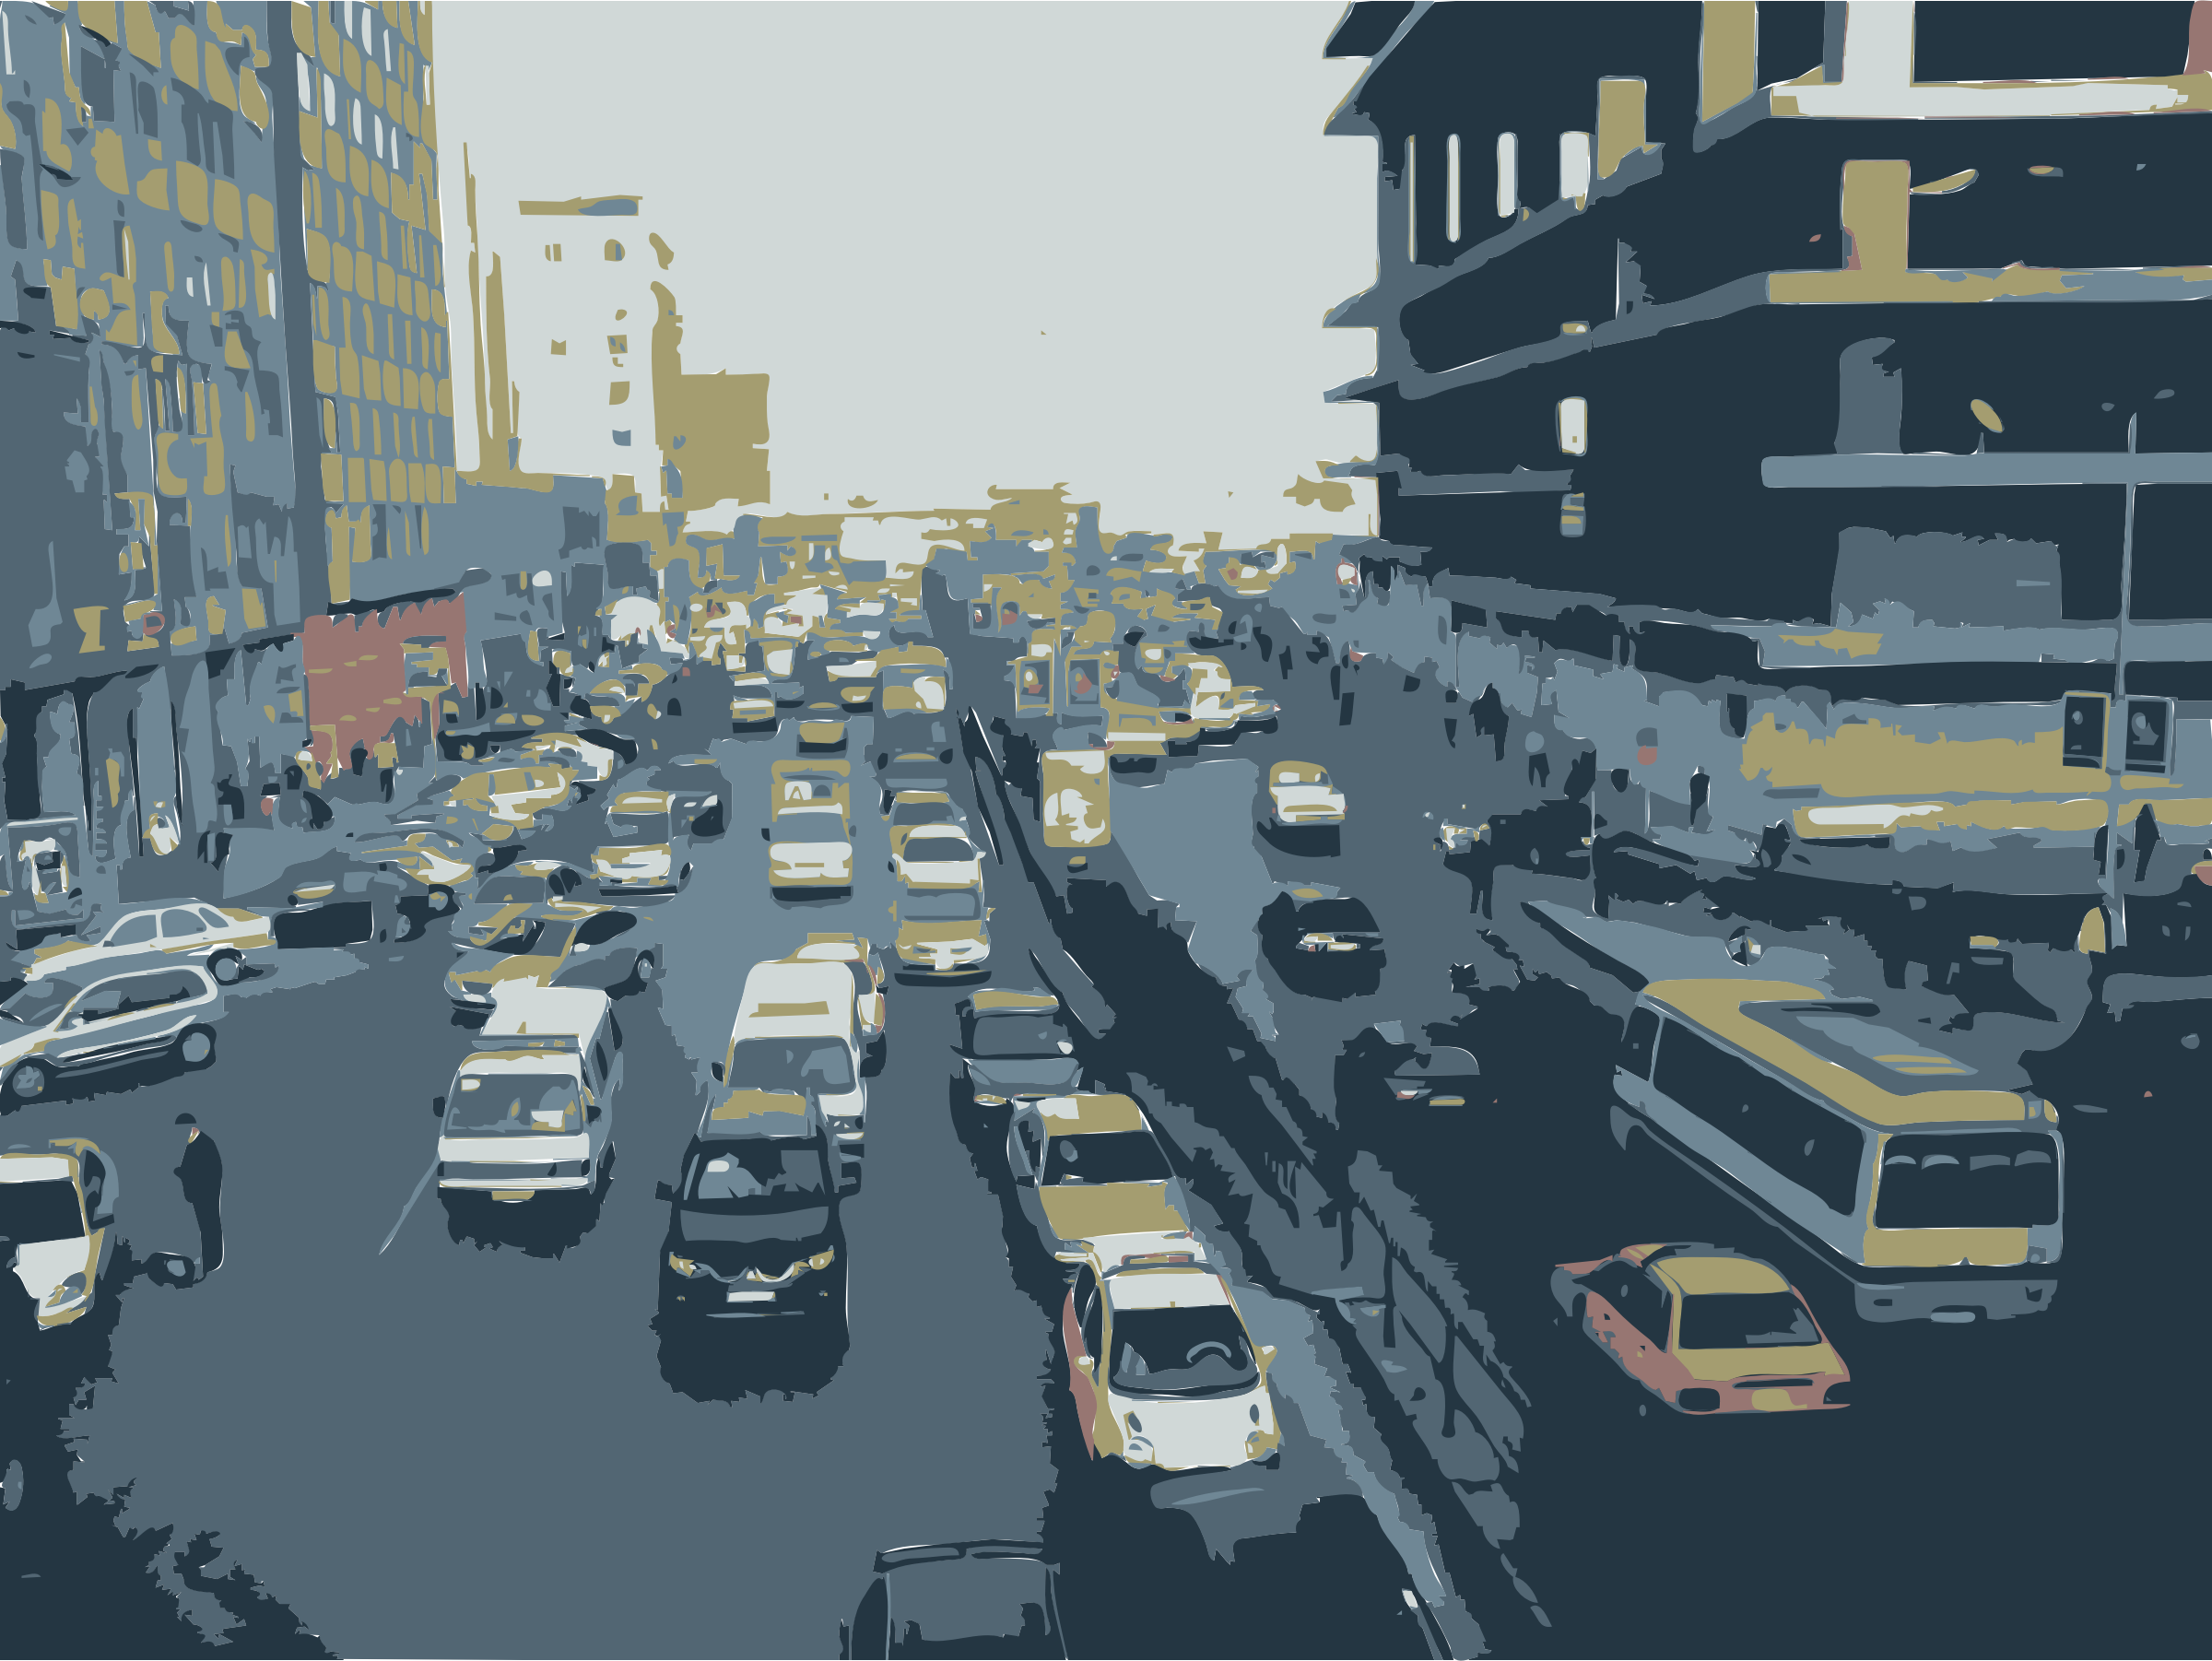 Damascus Traffic 2009-11-12 15.26.18 by rejon